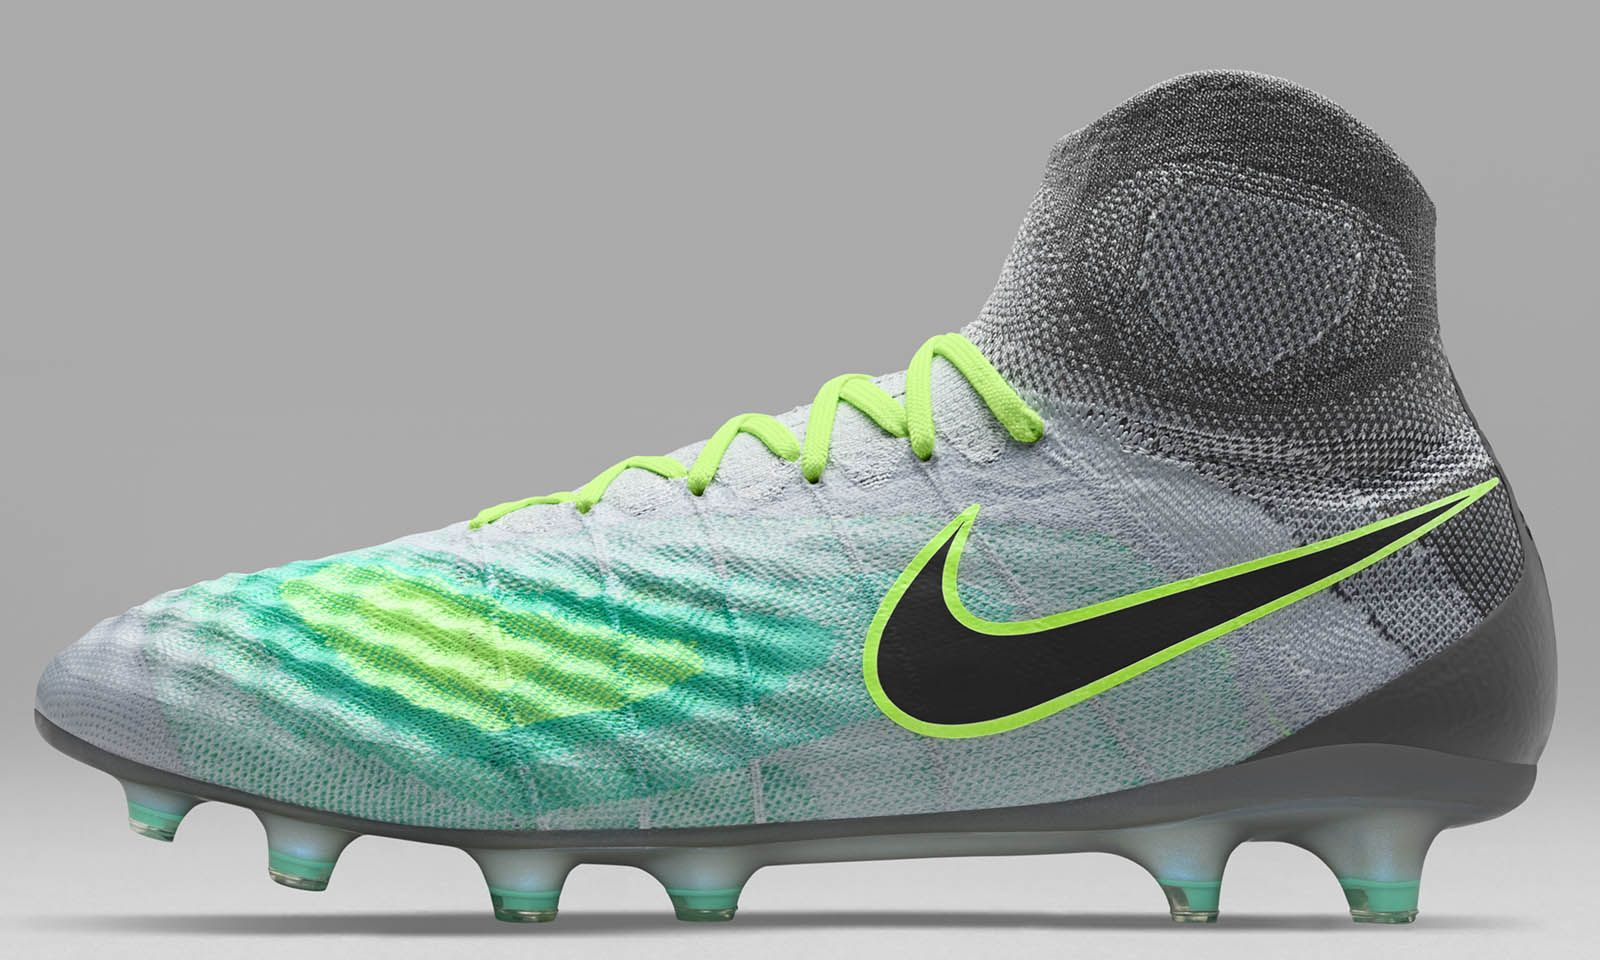 0f2ac0fd026 The Pure Platinum Nike Magista Obra II football boots introduce an  understated-yet-bold look for the second-gen Nike Magista cleats